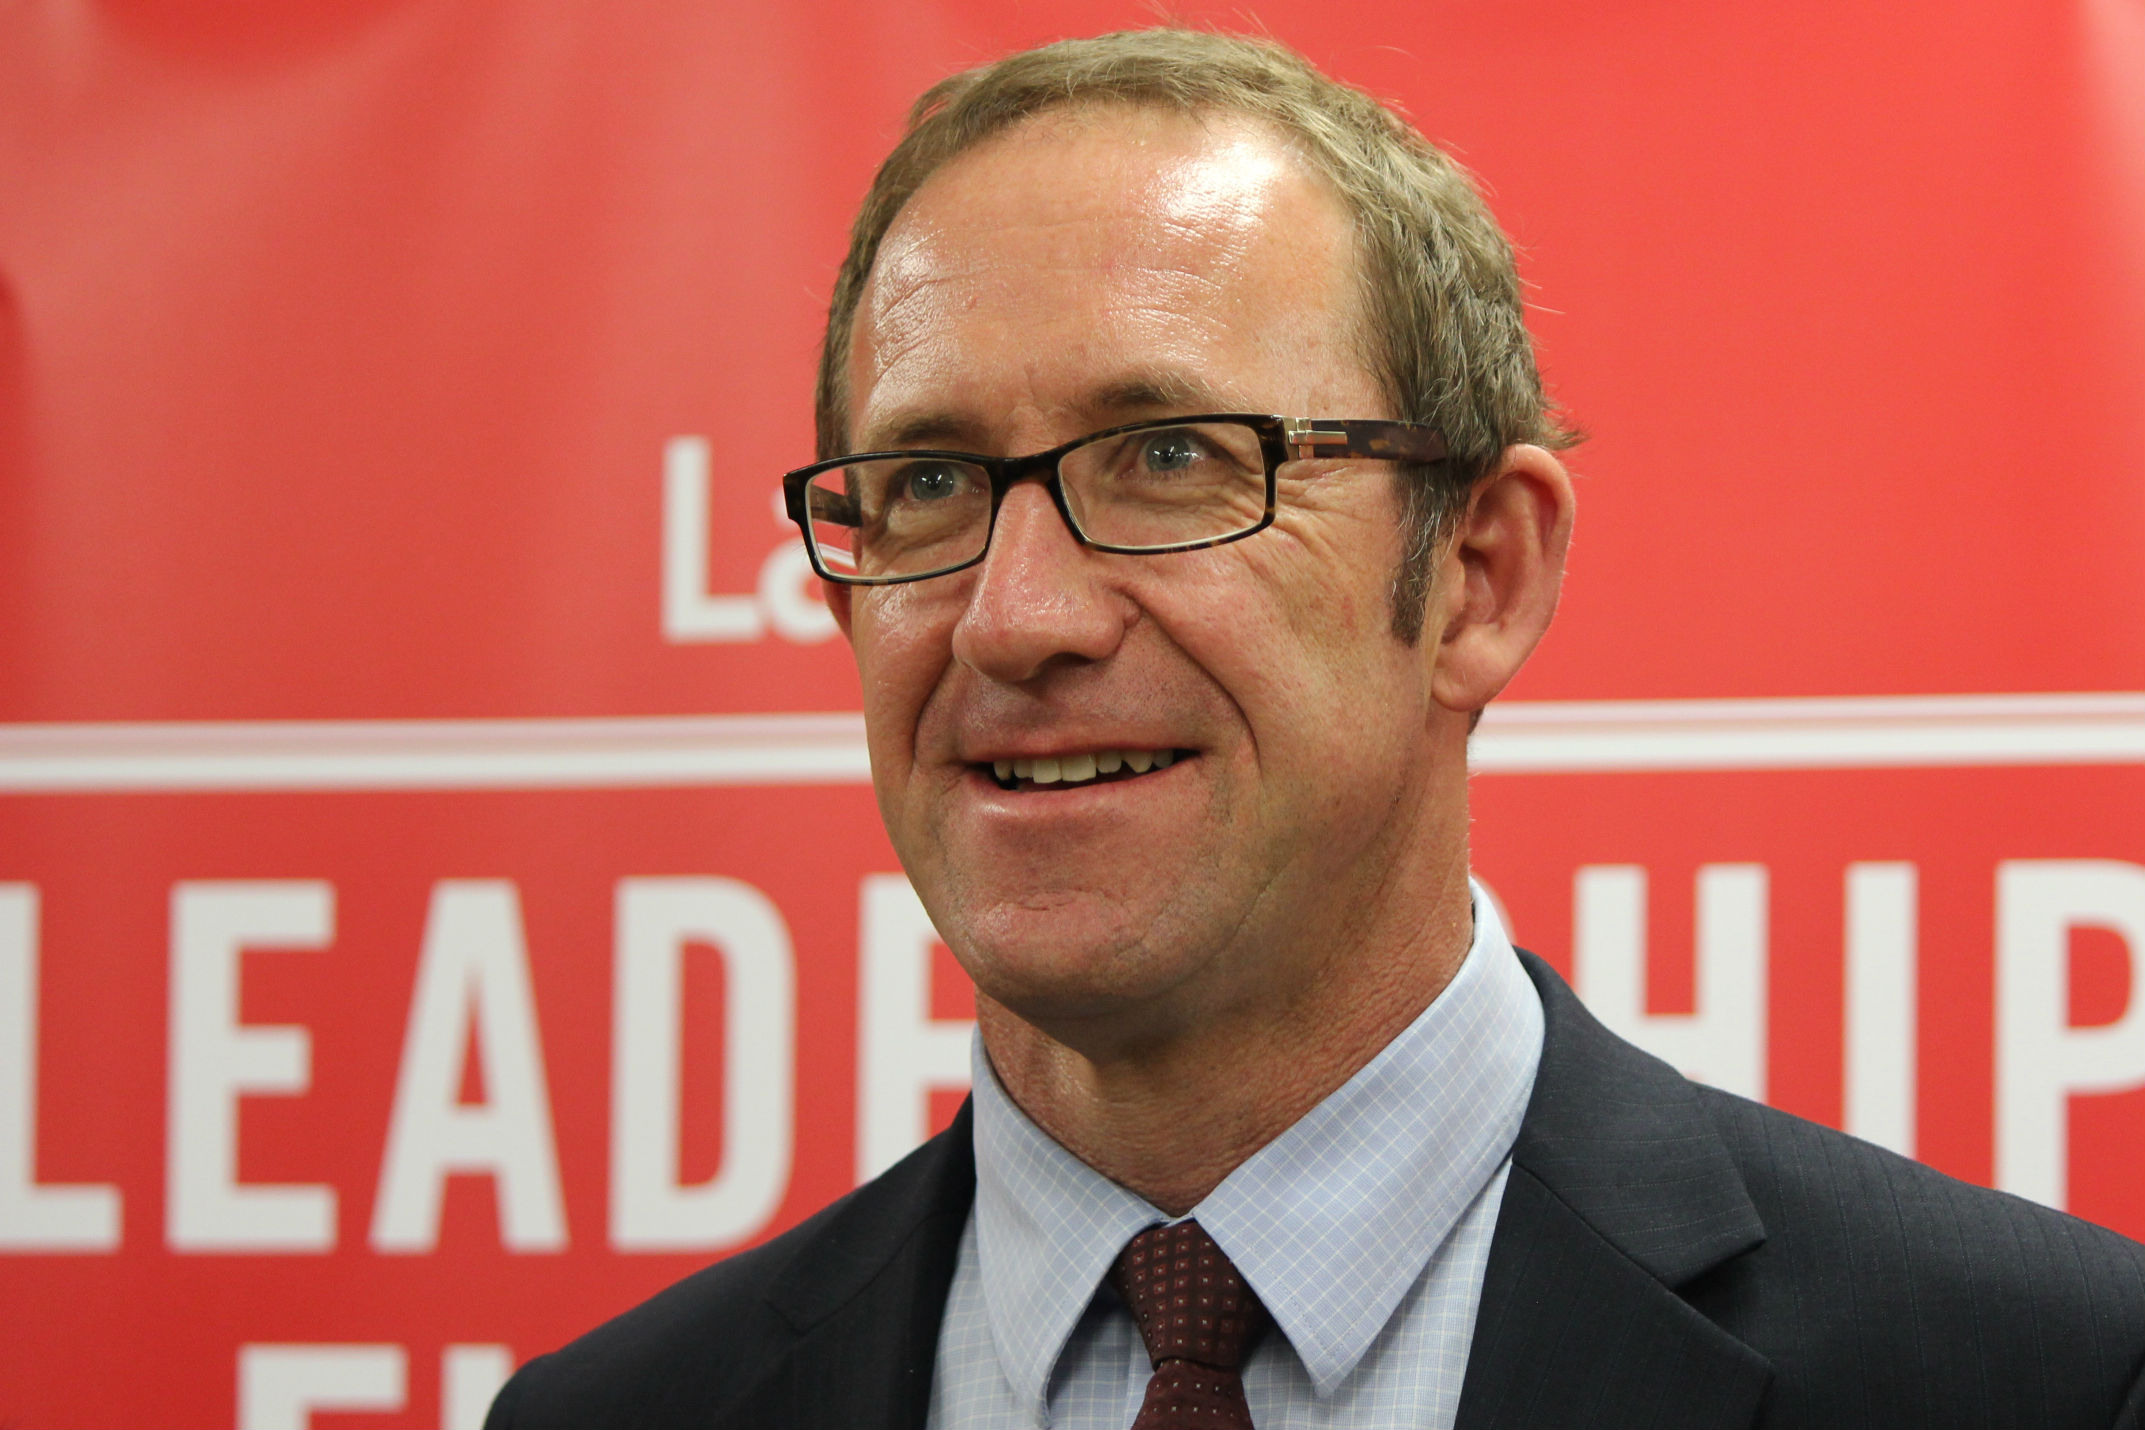 andrew_little4_labour_simonwong_1200.jpg